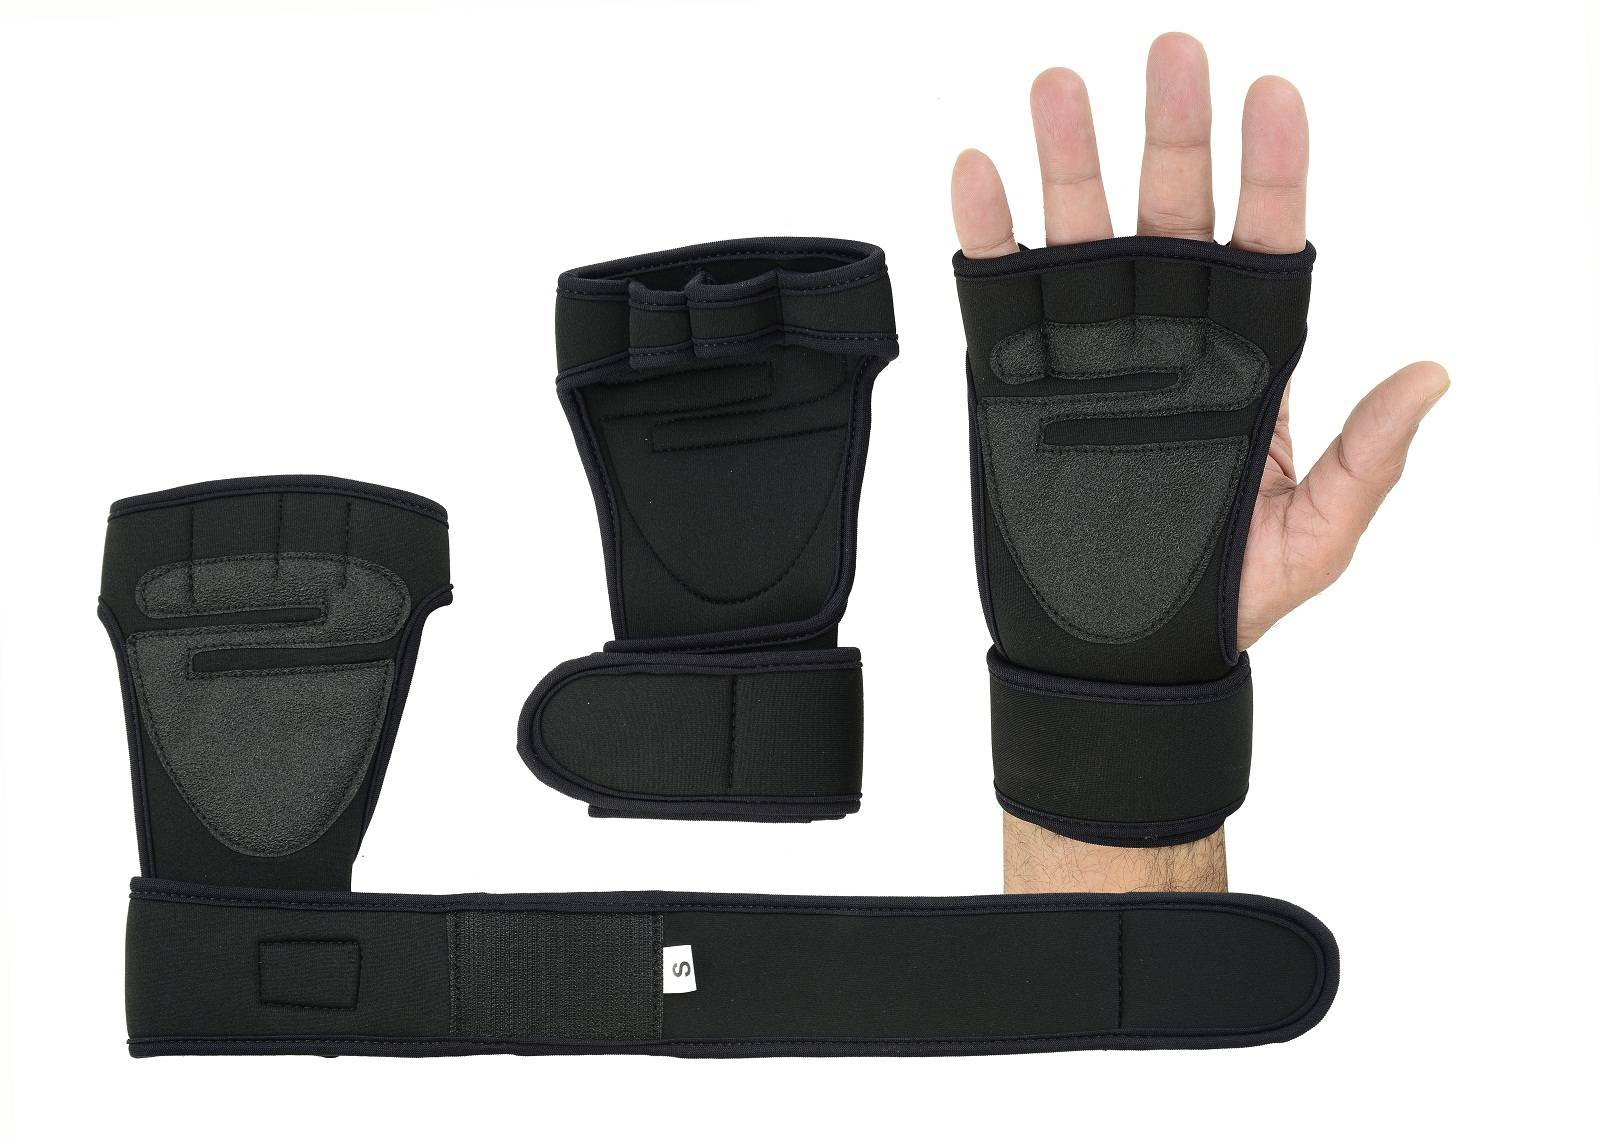 Lange polsbanden Padded Palm Gym Training Fitness handschoen